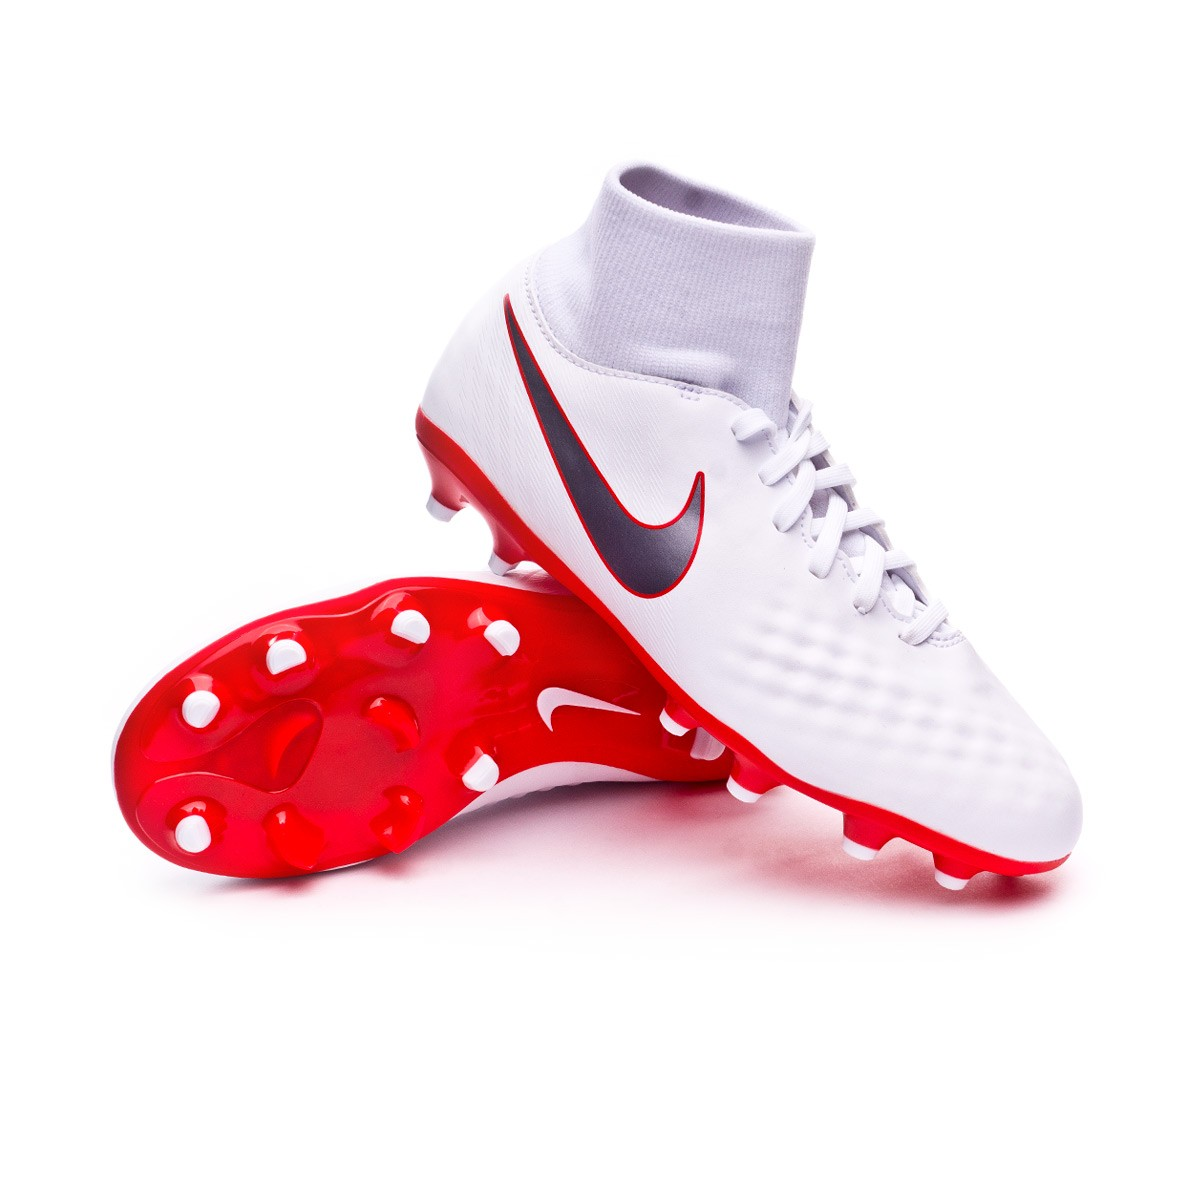 wholesale dealer 2cc47 f98ba Chaussure de foot Nike Magista Obra II Academy DF FG enfant White-Metallic  cool grey-Light crimson - Boutique de football Fútbol Emotion